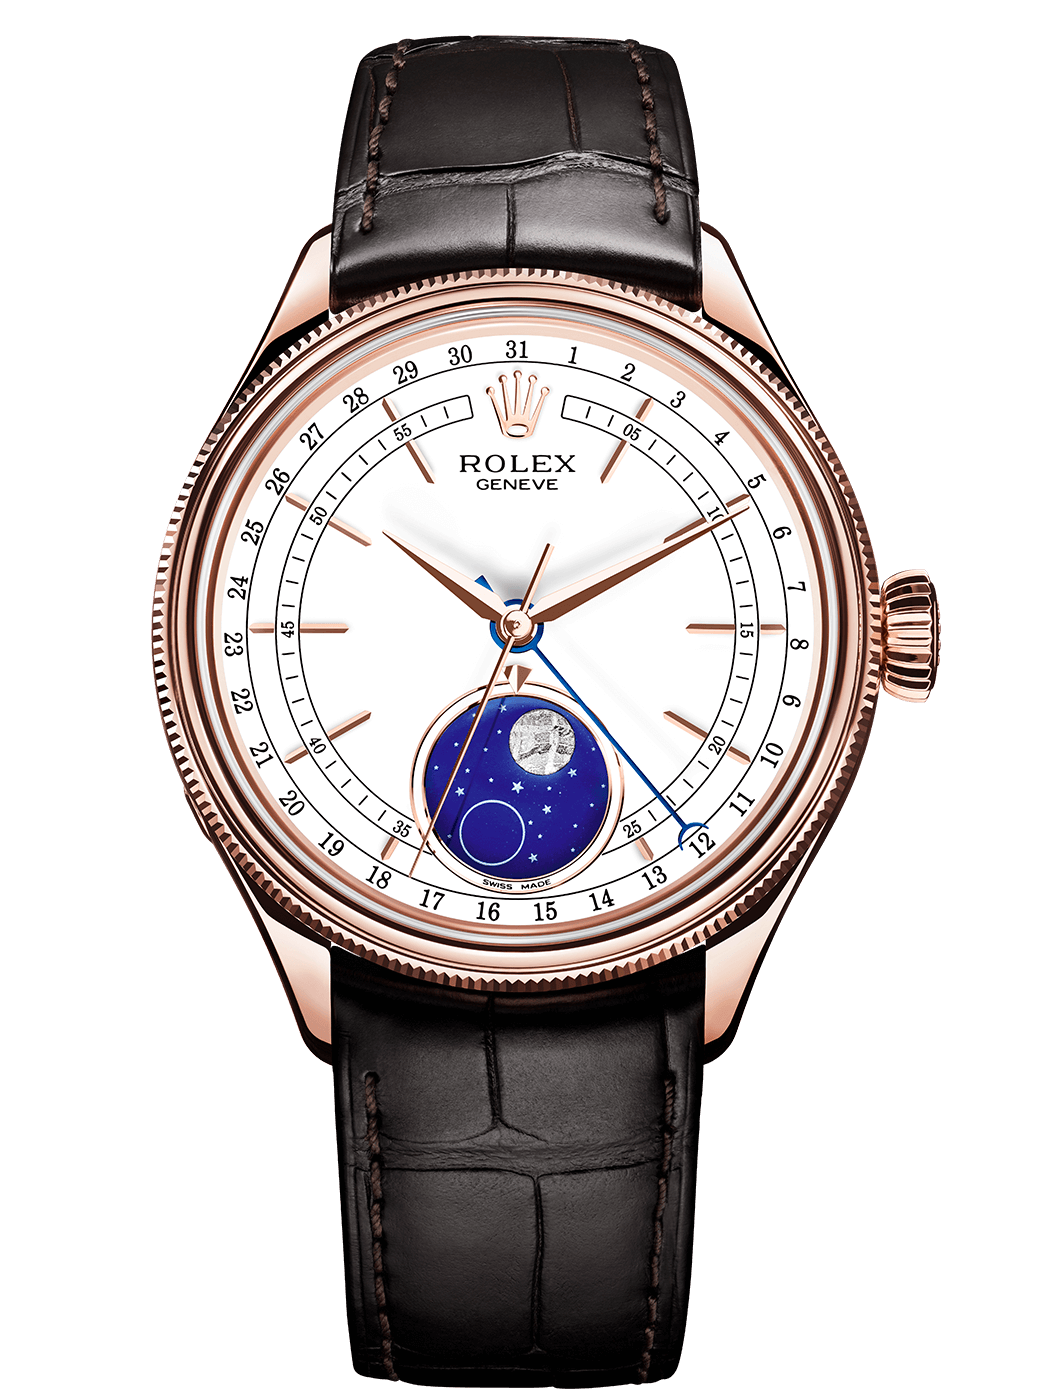 baselworld-2017-rolex-cellini-moonphase-lauren-blog.jpg